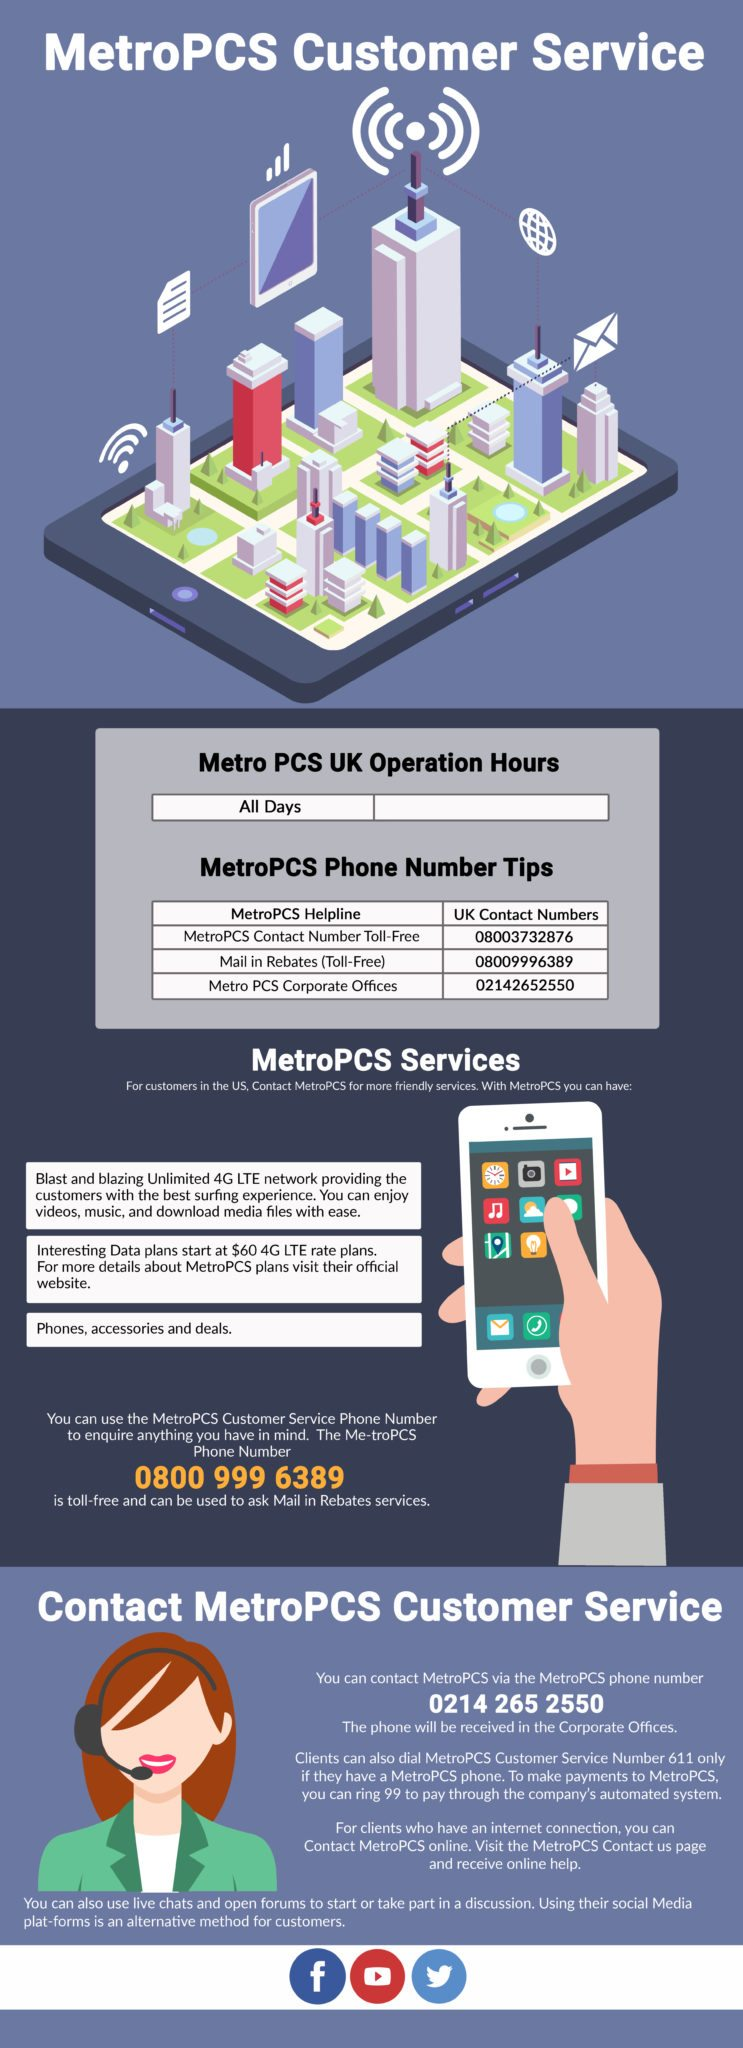 MetroPCS Customer Service Contact Number